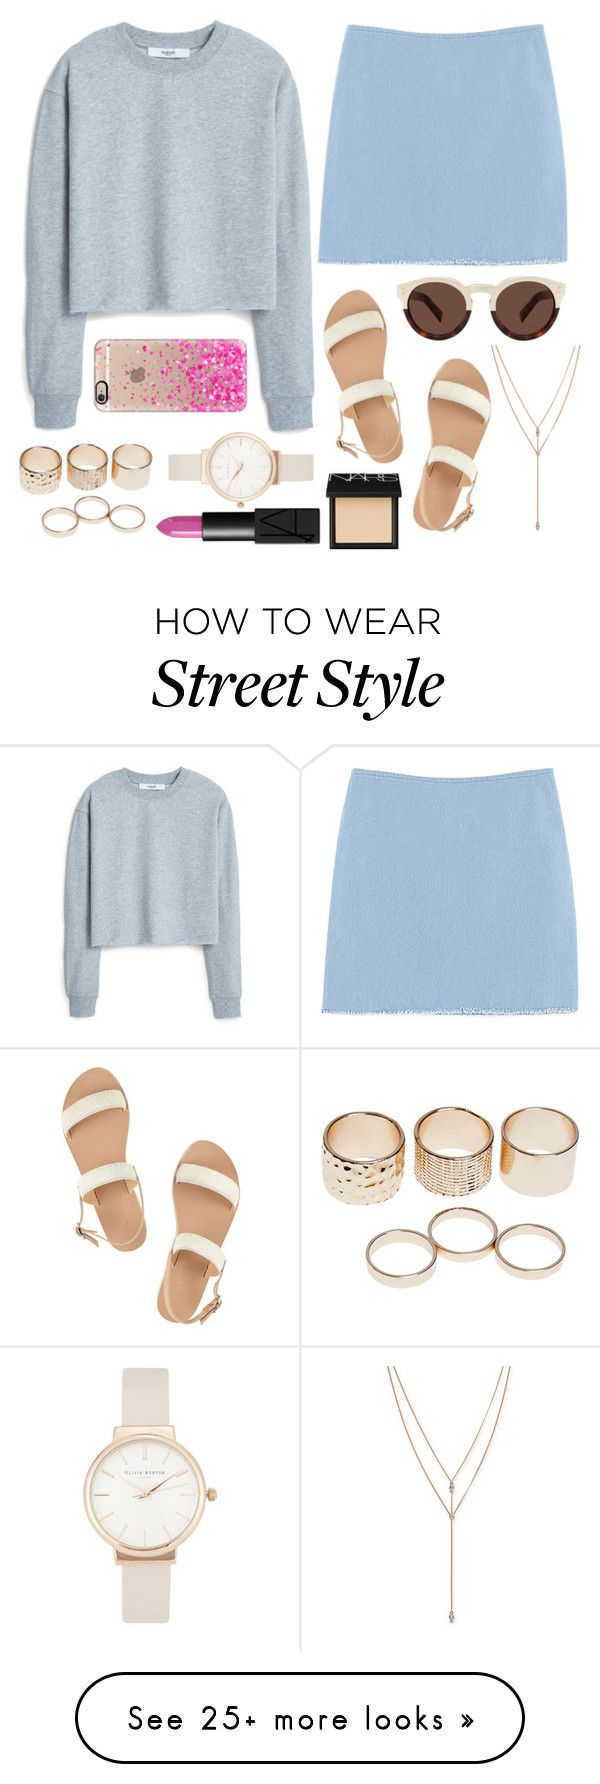 """""""Casual street style"""" by ccpace18 on Polyvore featuring Chicnova Fashion, MANGO, NARS Cosmetics, Ancient Greek Sandals, Wet Seal, Illesteva, Olivia Burton, Vince Camuto and Casetify"""